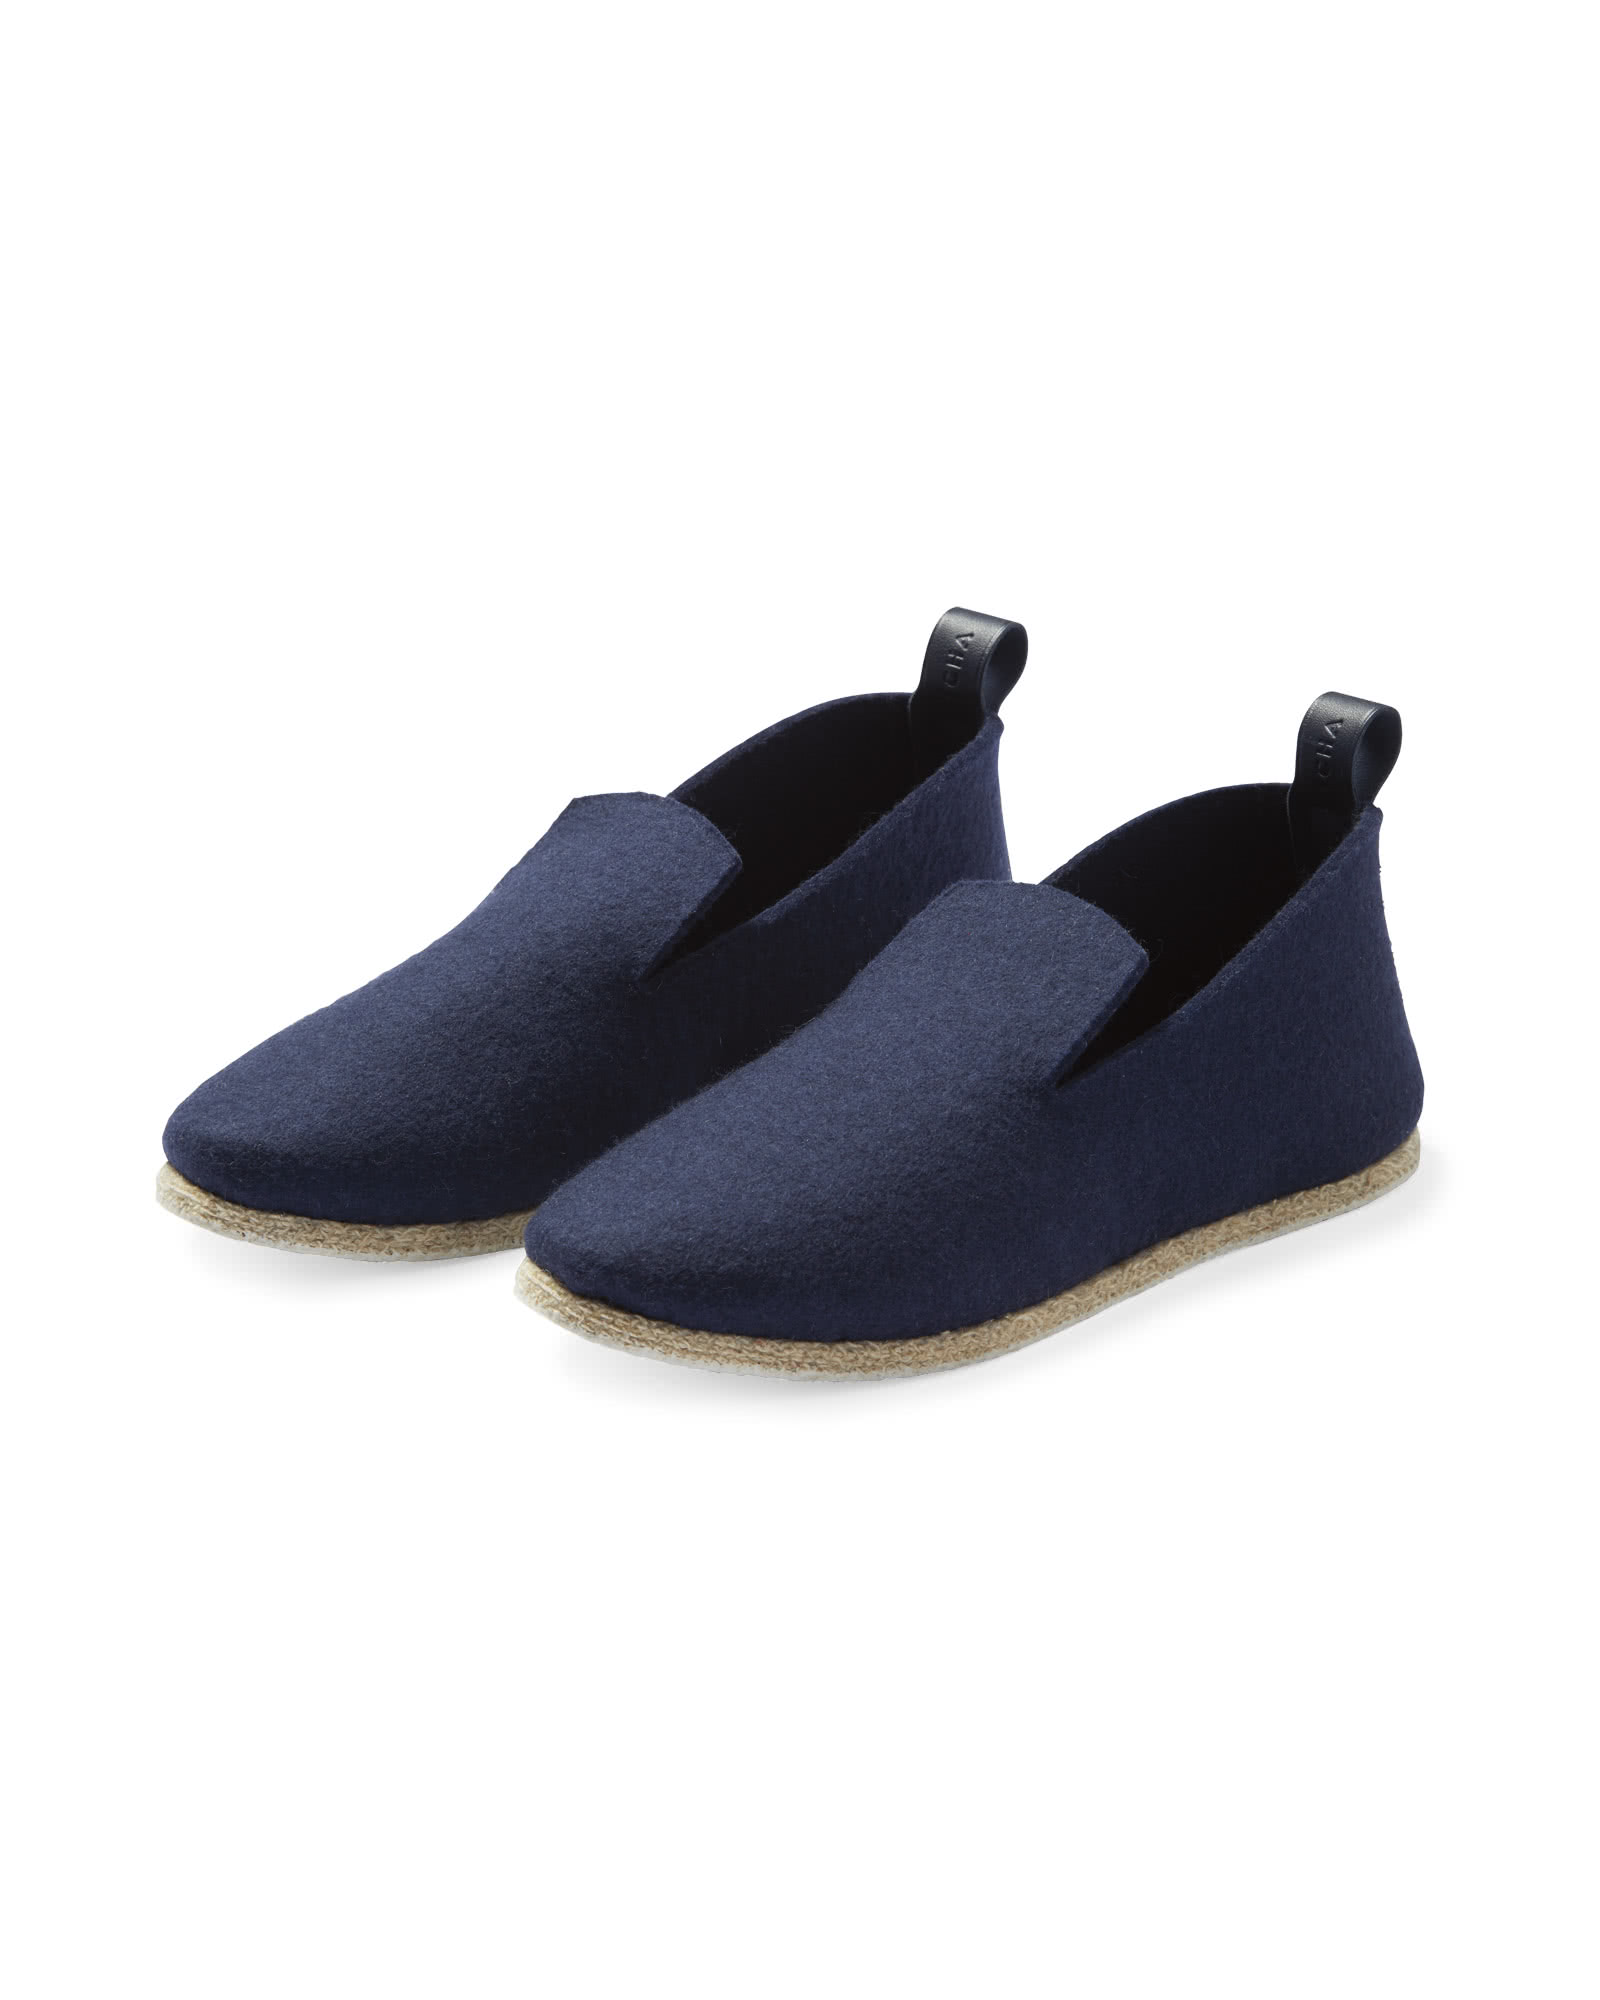 French Felt Slippers, Navy